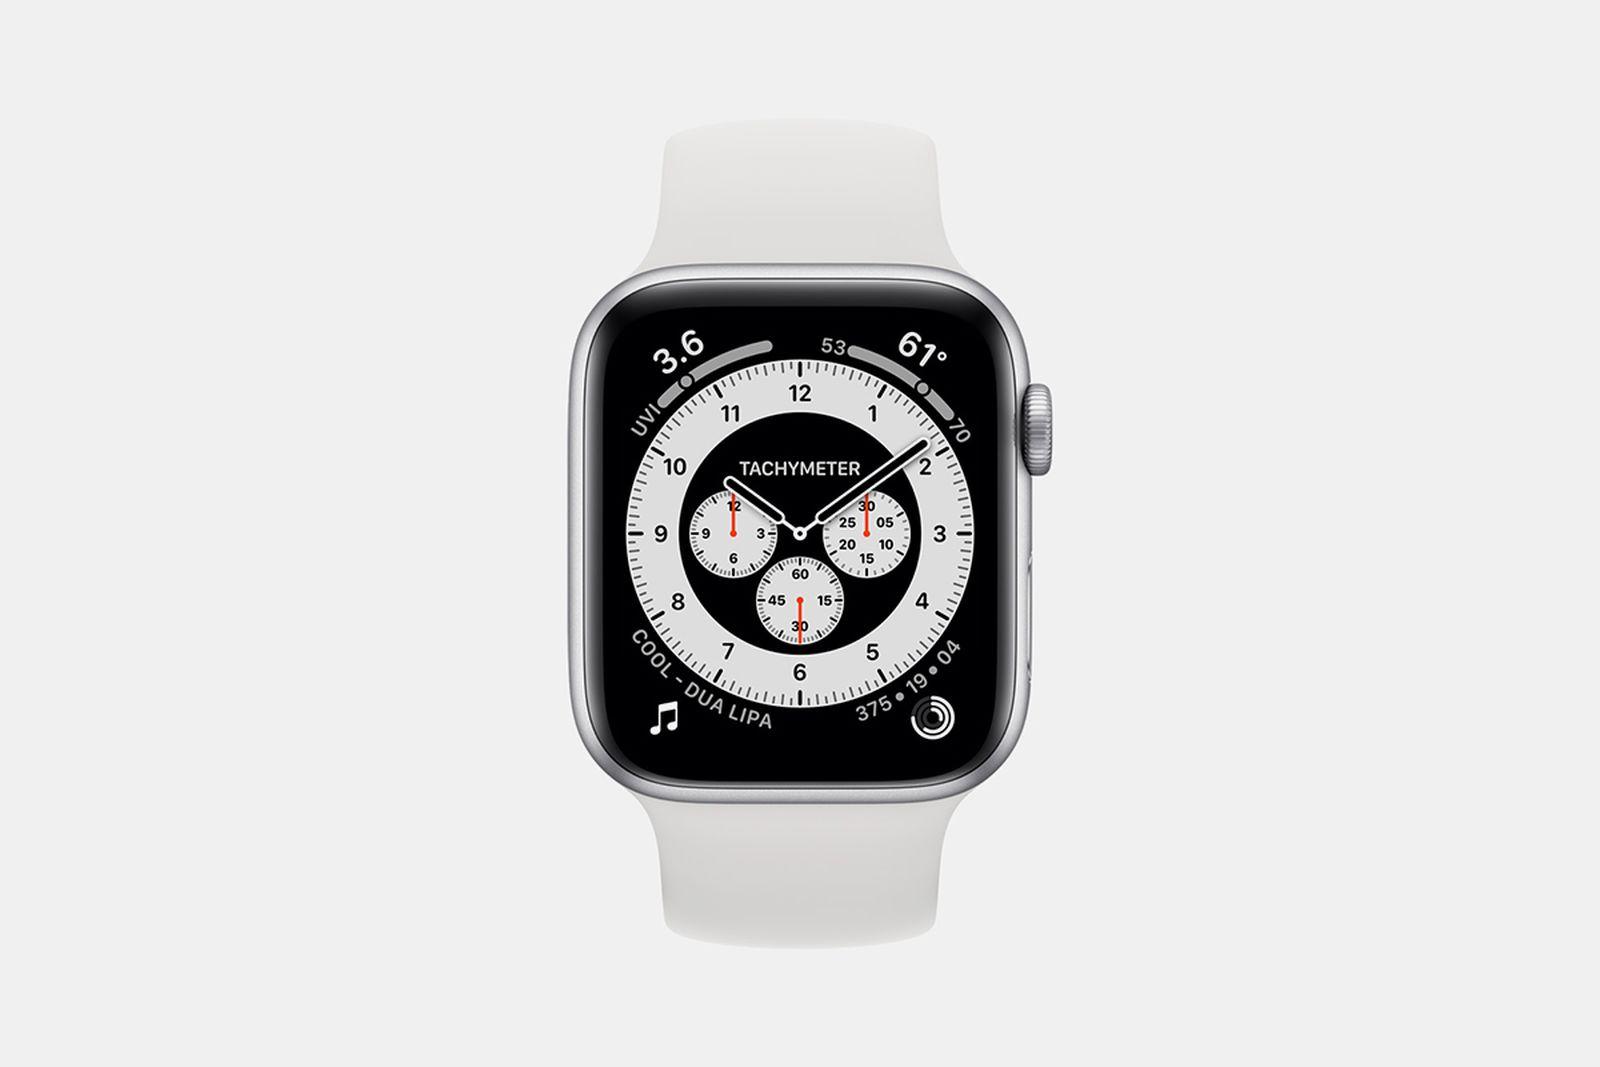 apple-watch-series-6-ipad-air-03